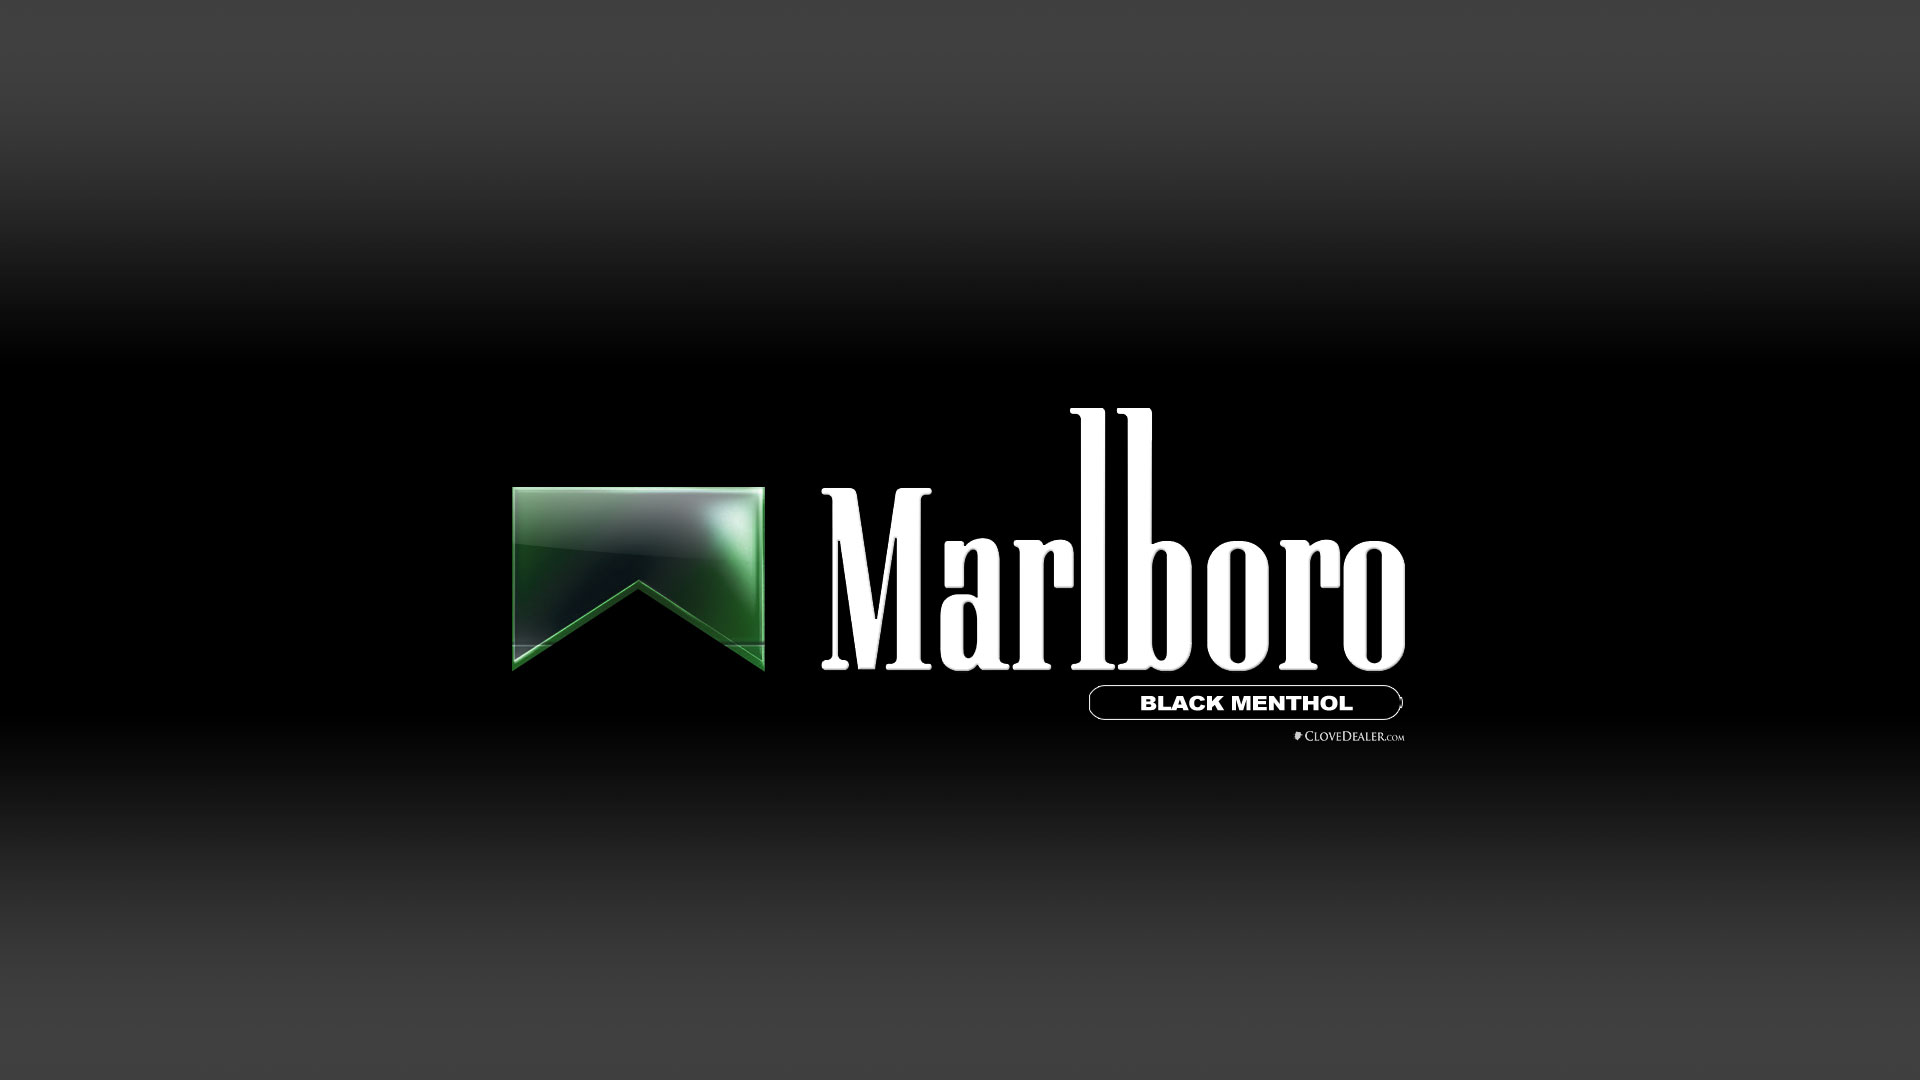 How much is duty free cigarettes Marlboro in Houston